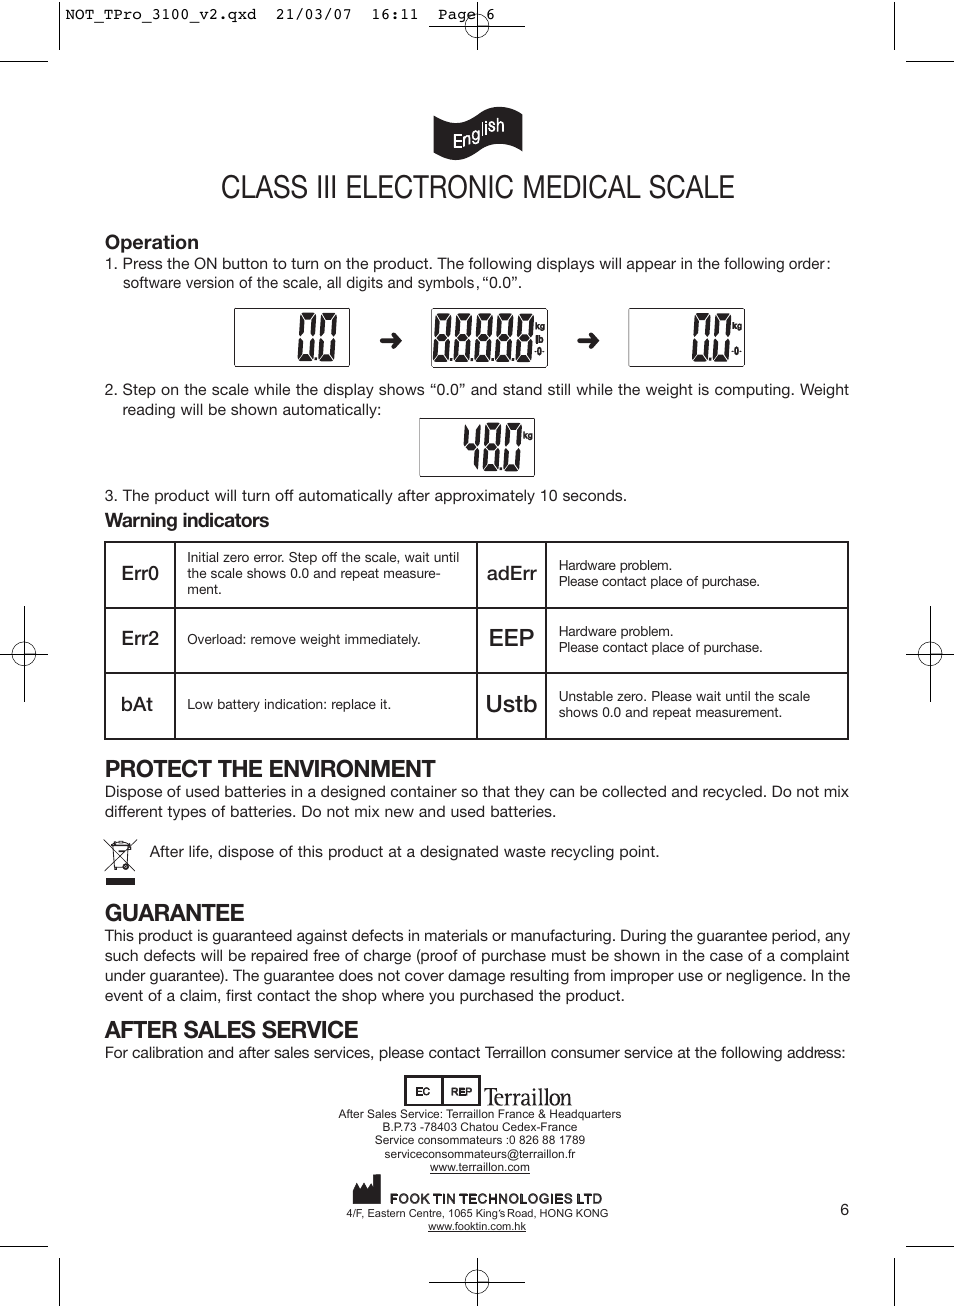 class iii electronic medical scale, ustb, protect the environment